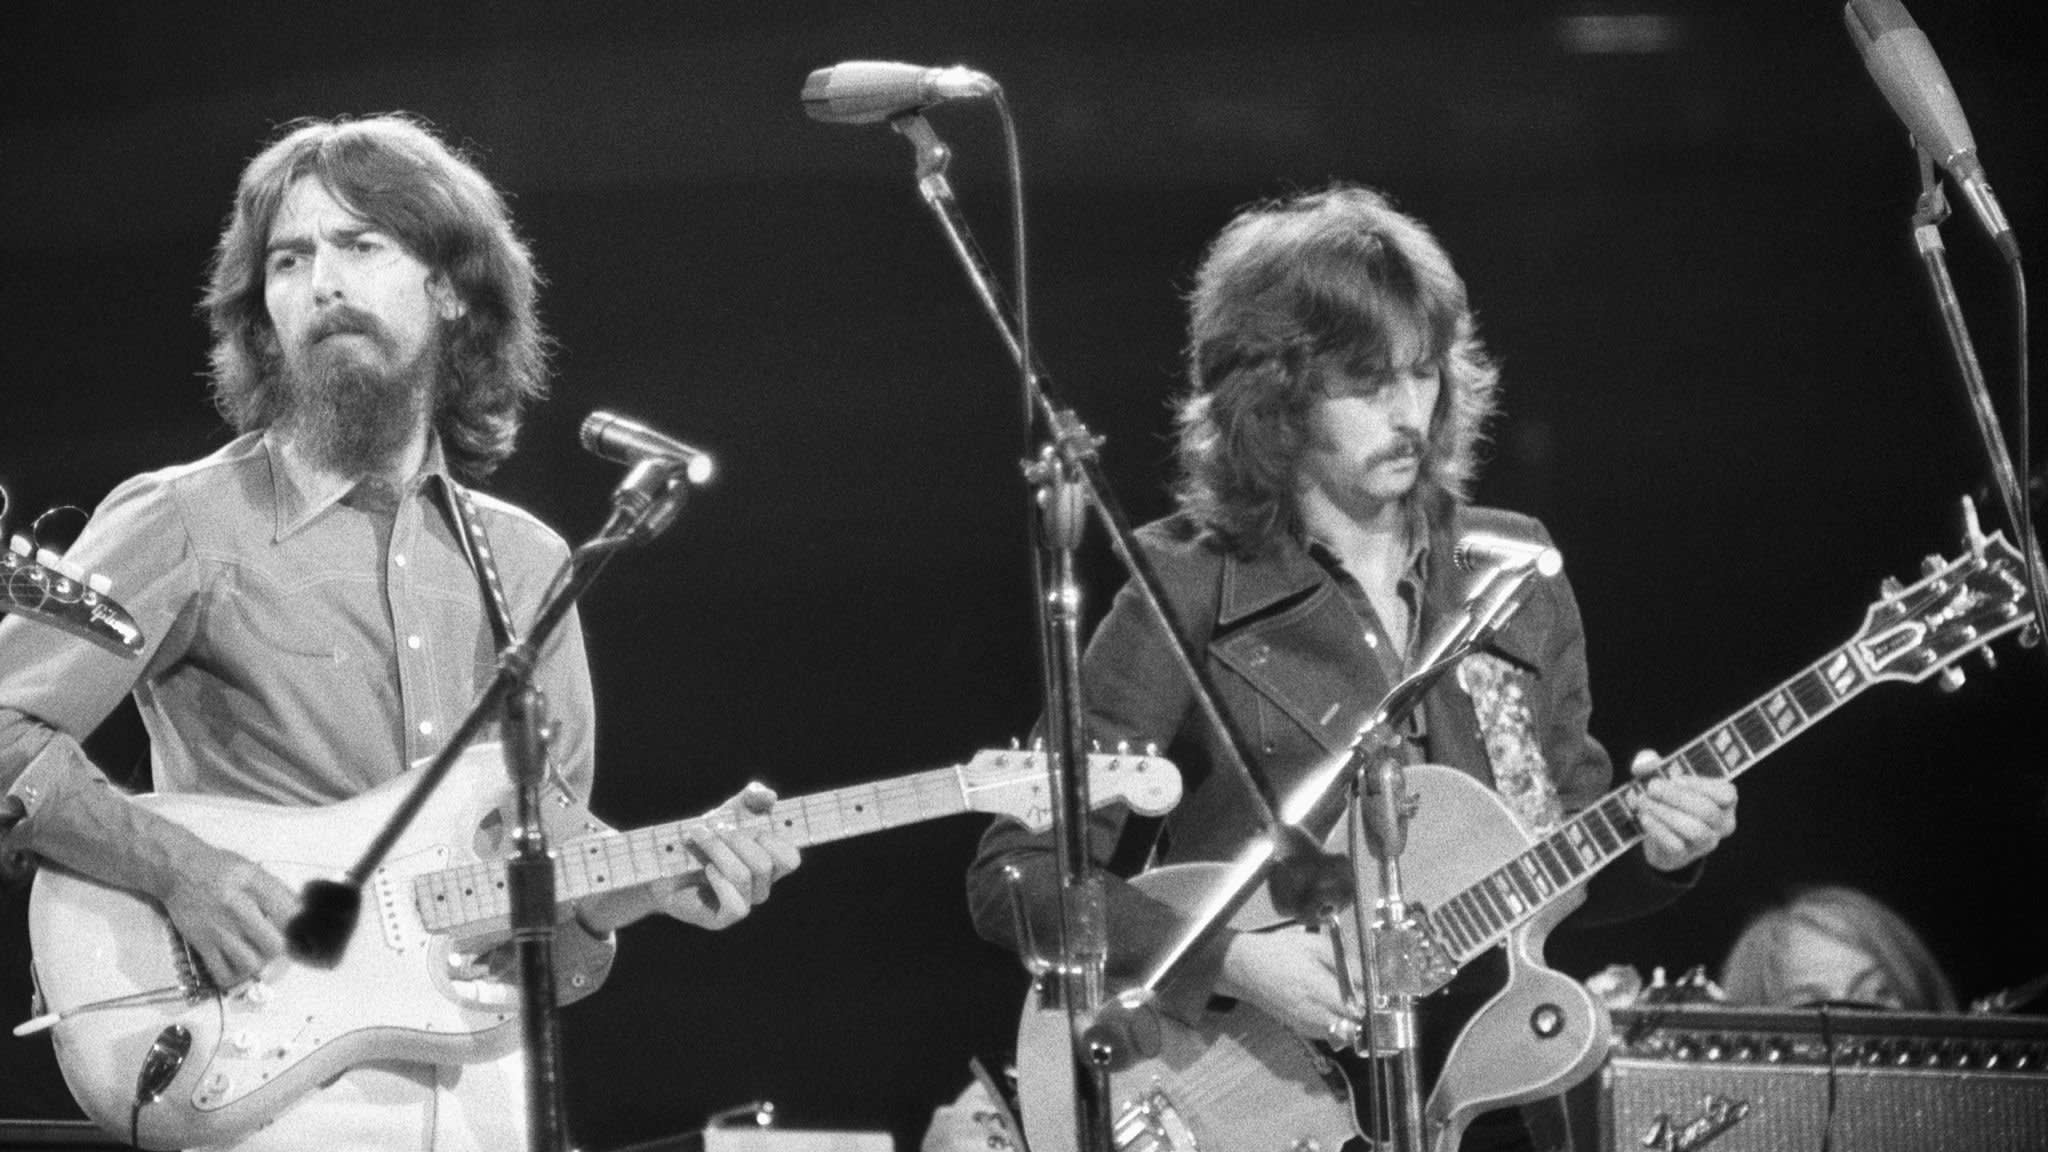 While My Guitar Gently Weeps — George Harrison's song began